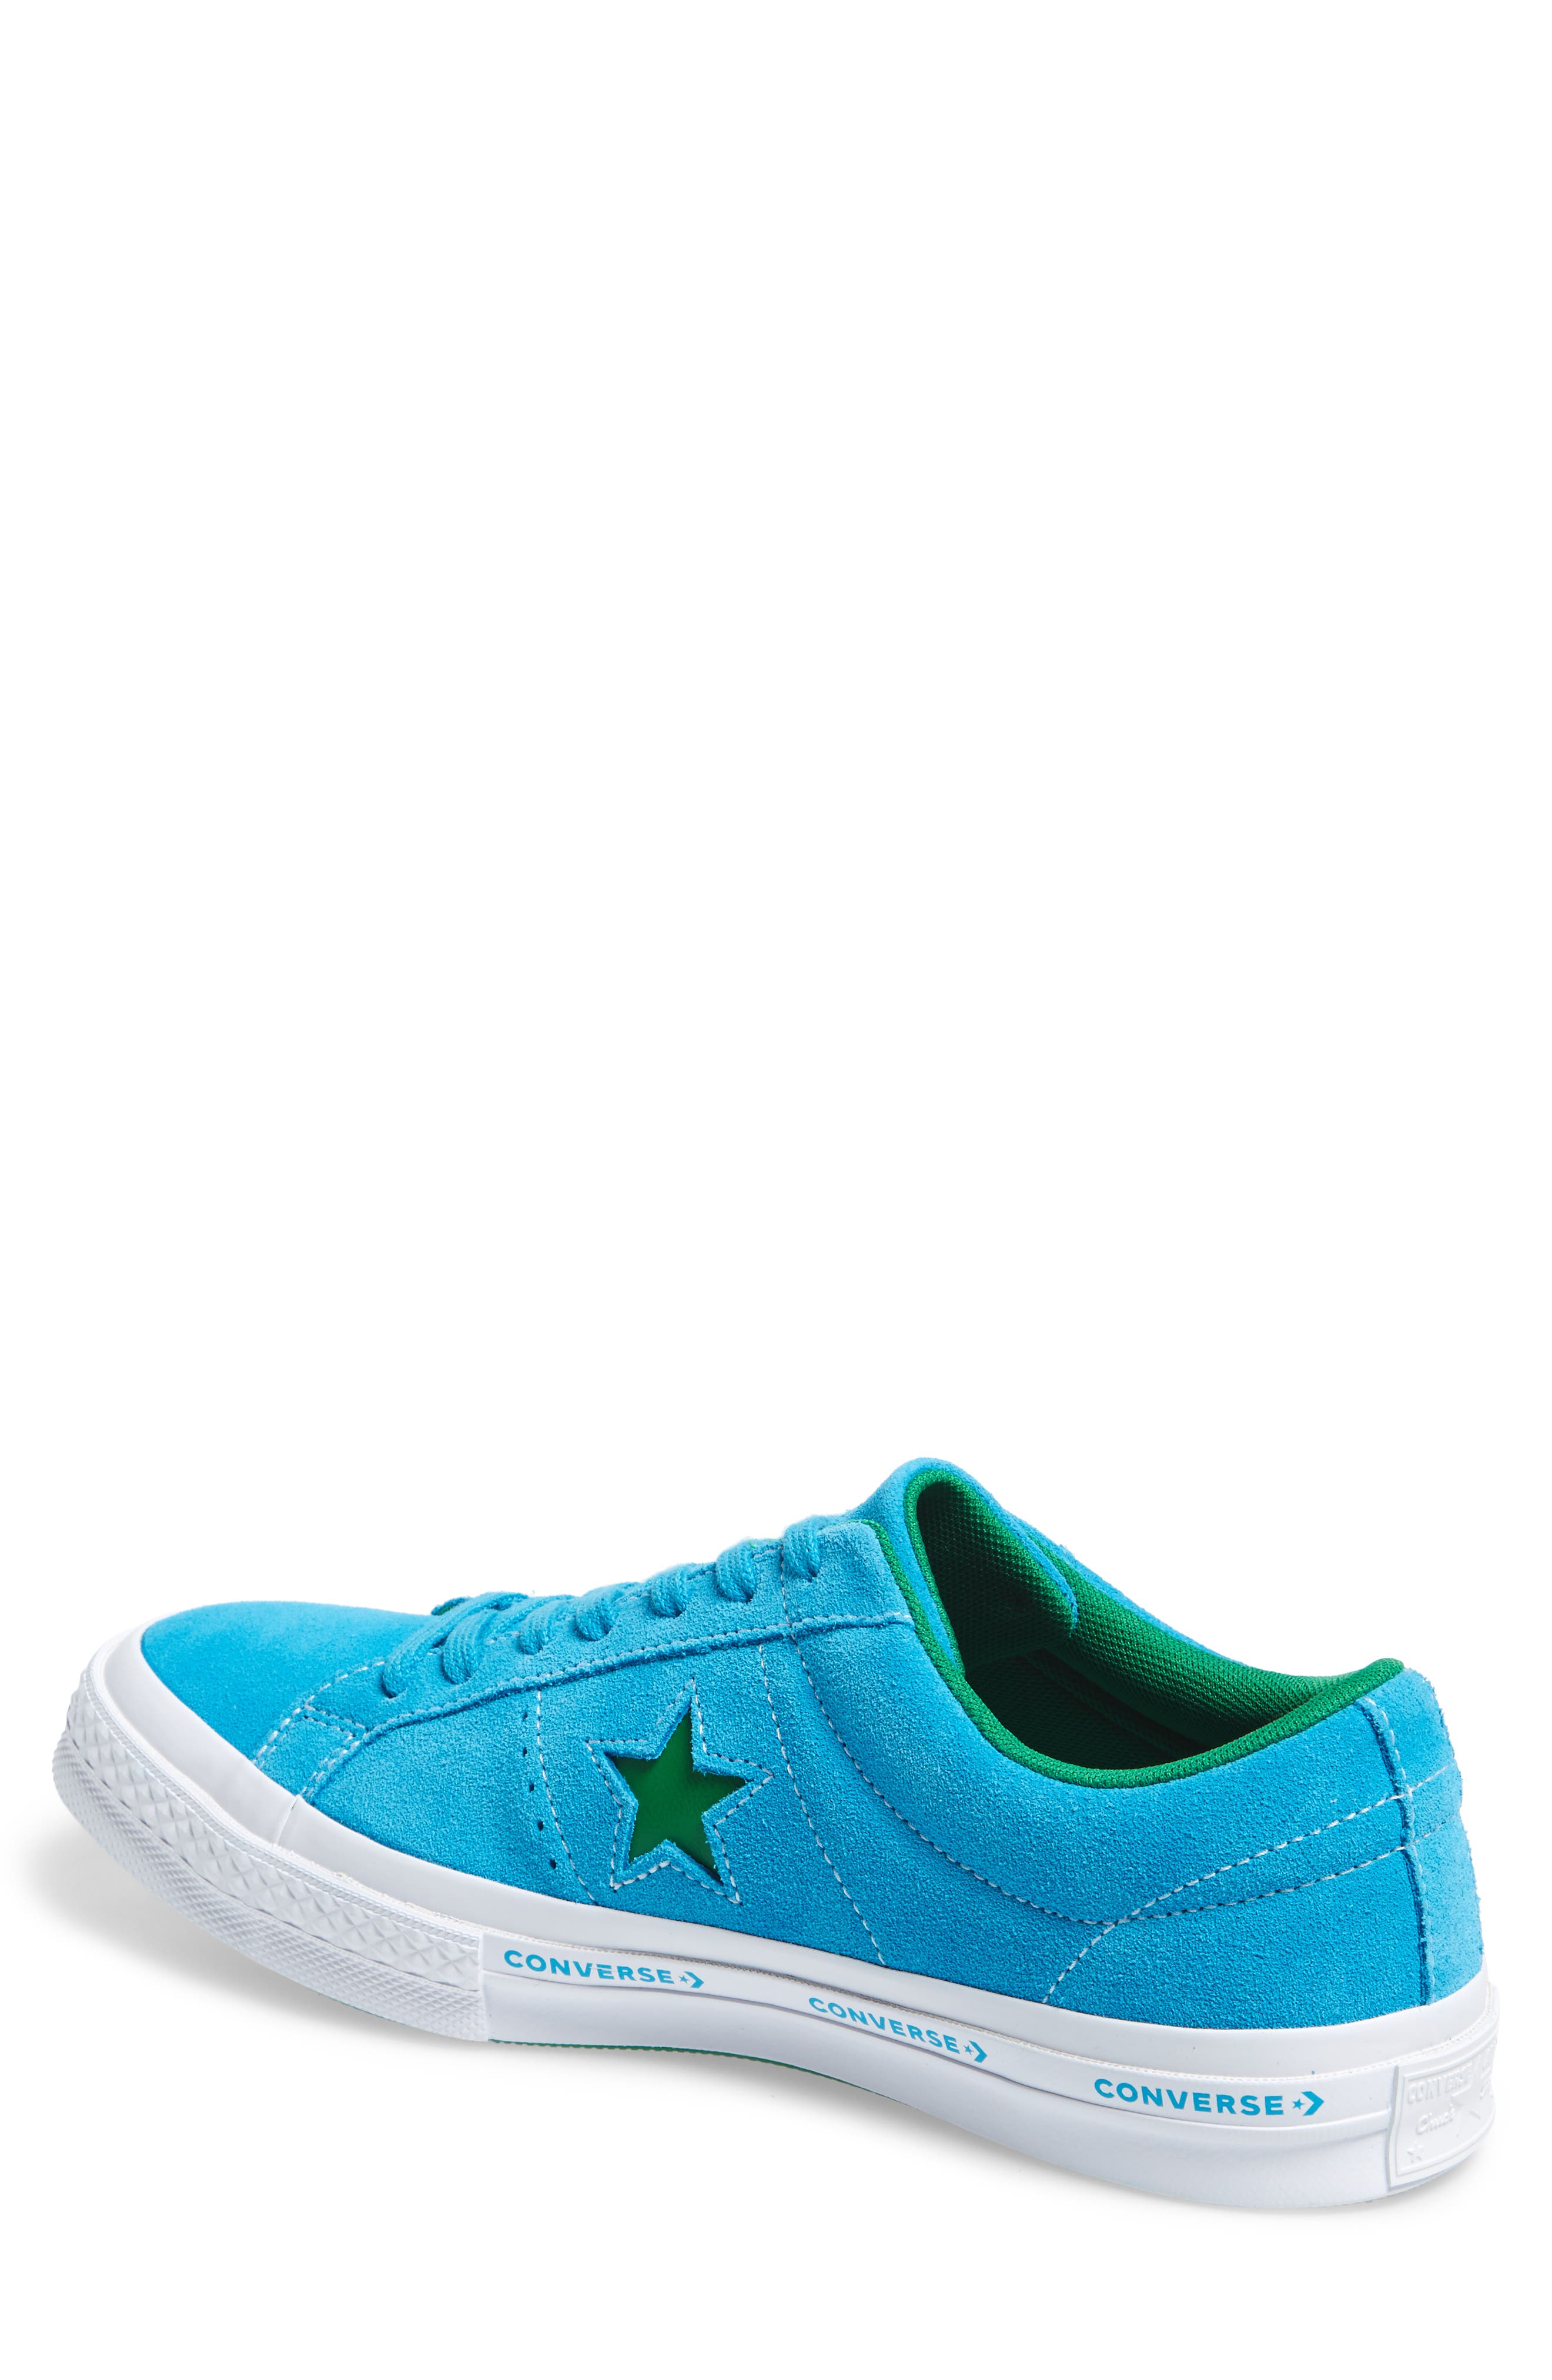 Chuck Taylor<sup>®</sup> One Star Pinstripe Sneaker,                             Alternate thumbnail 6, color,